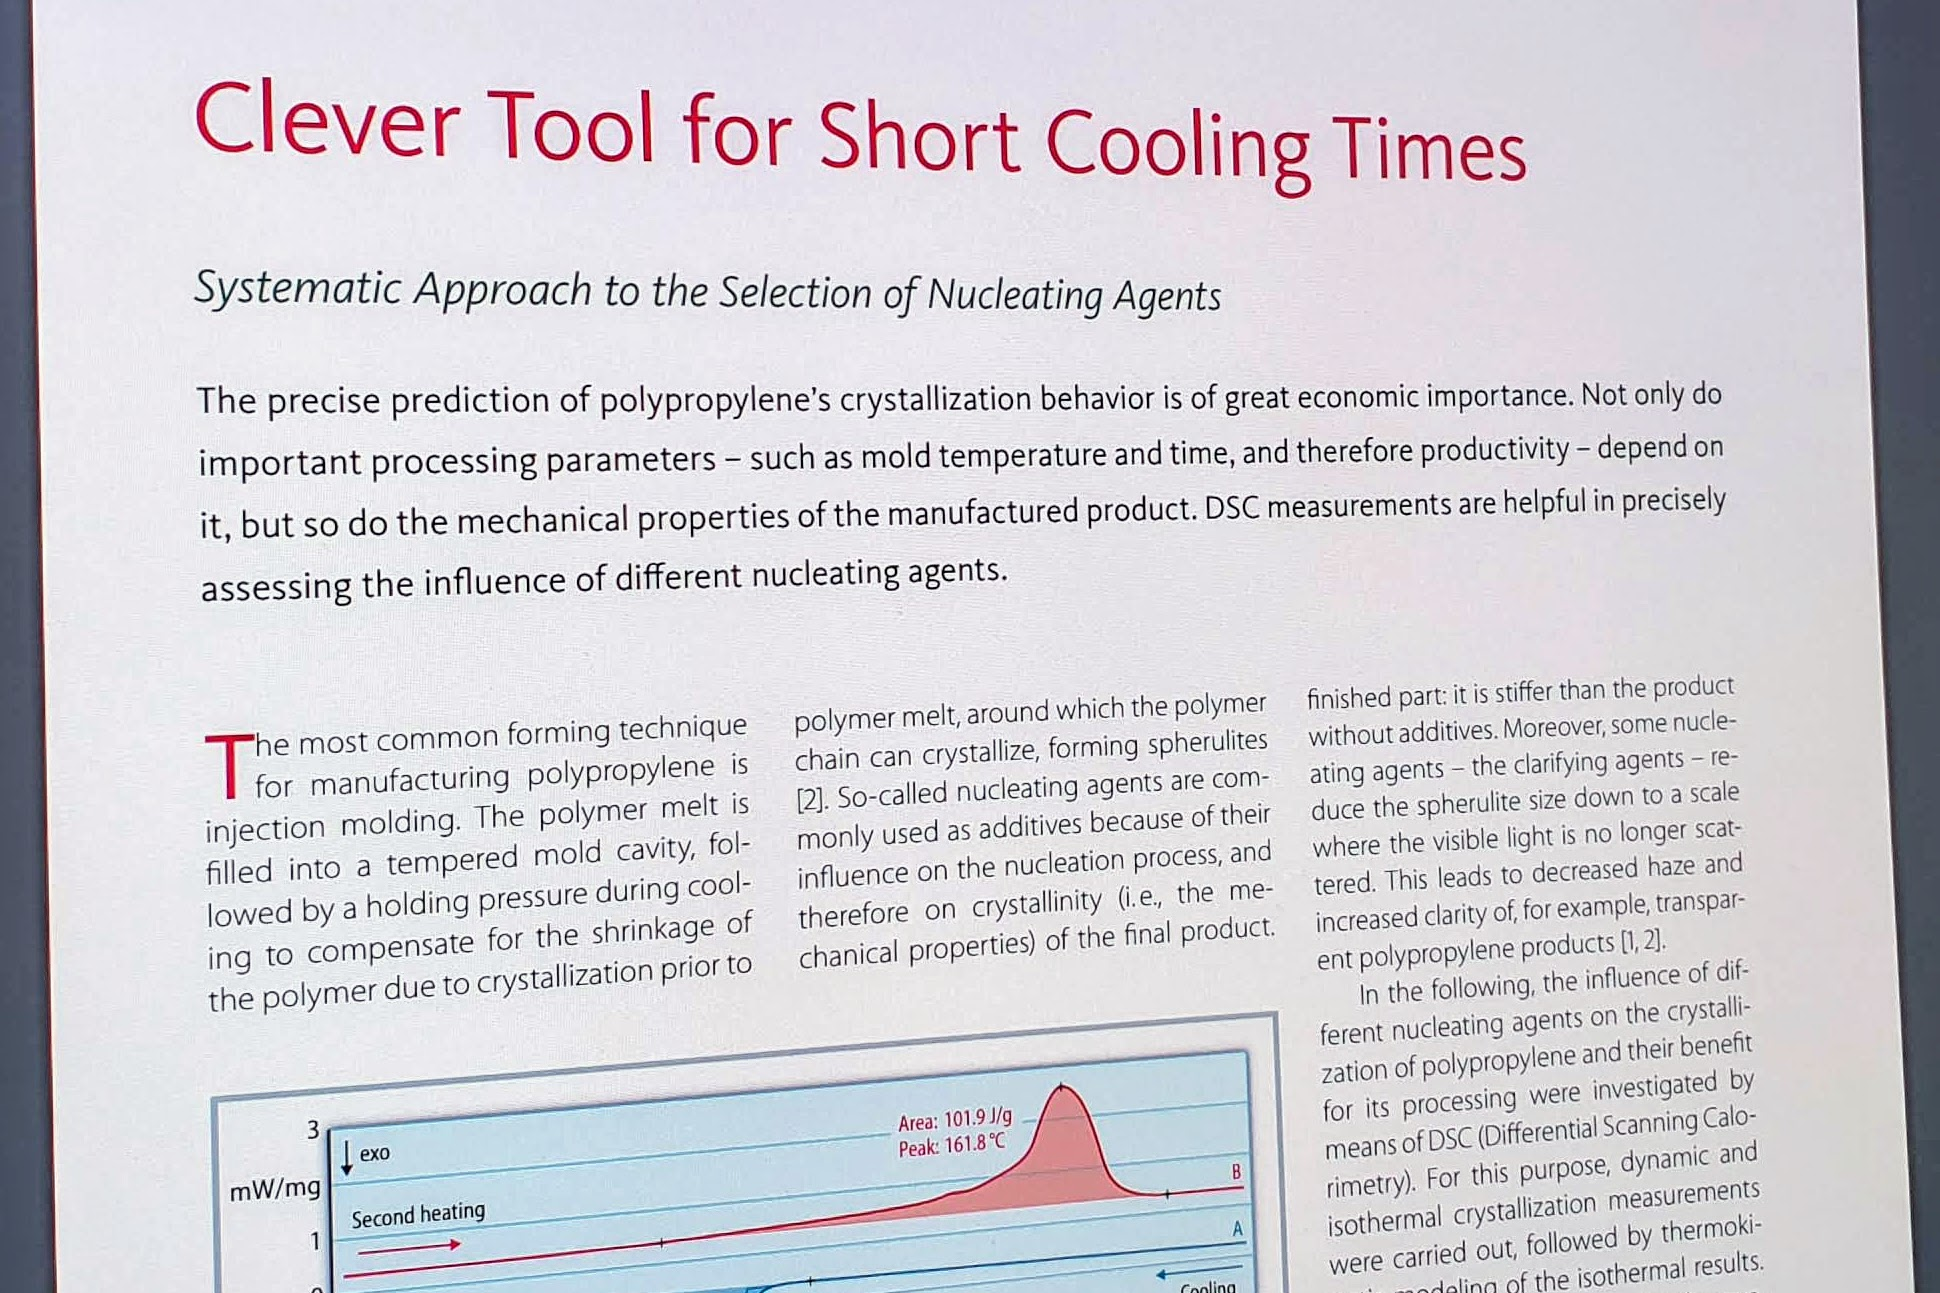 Clever Tool for Short Cooling Times